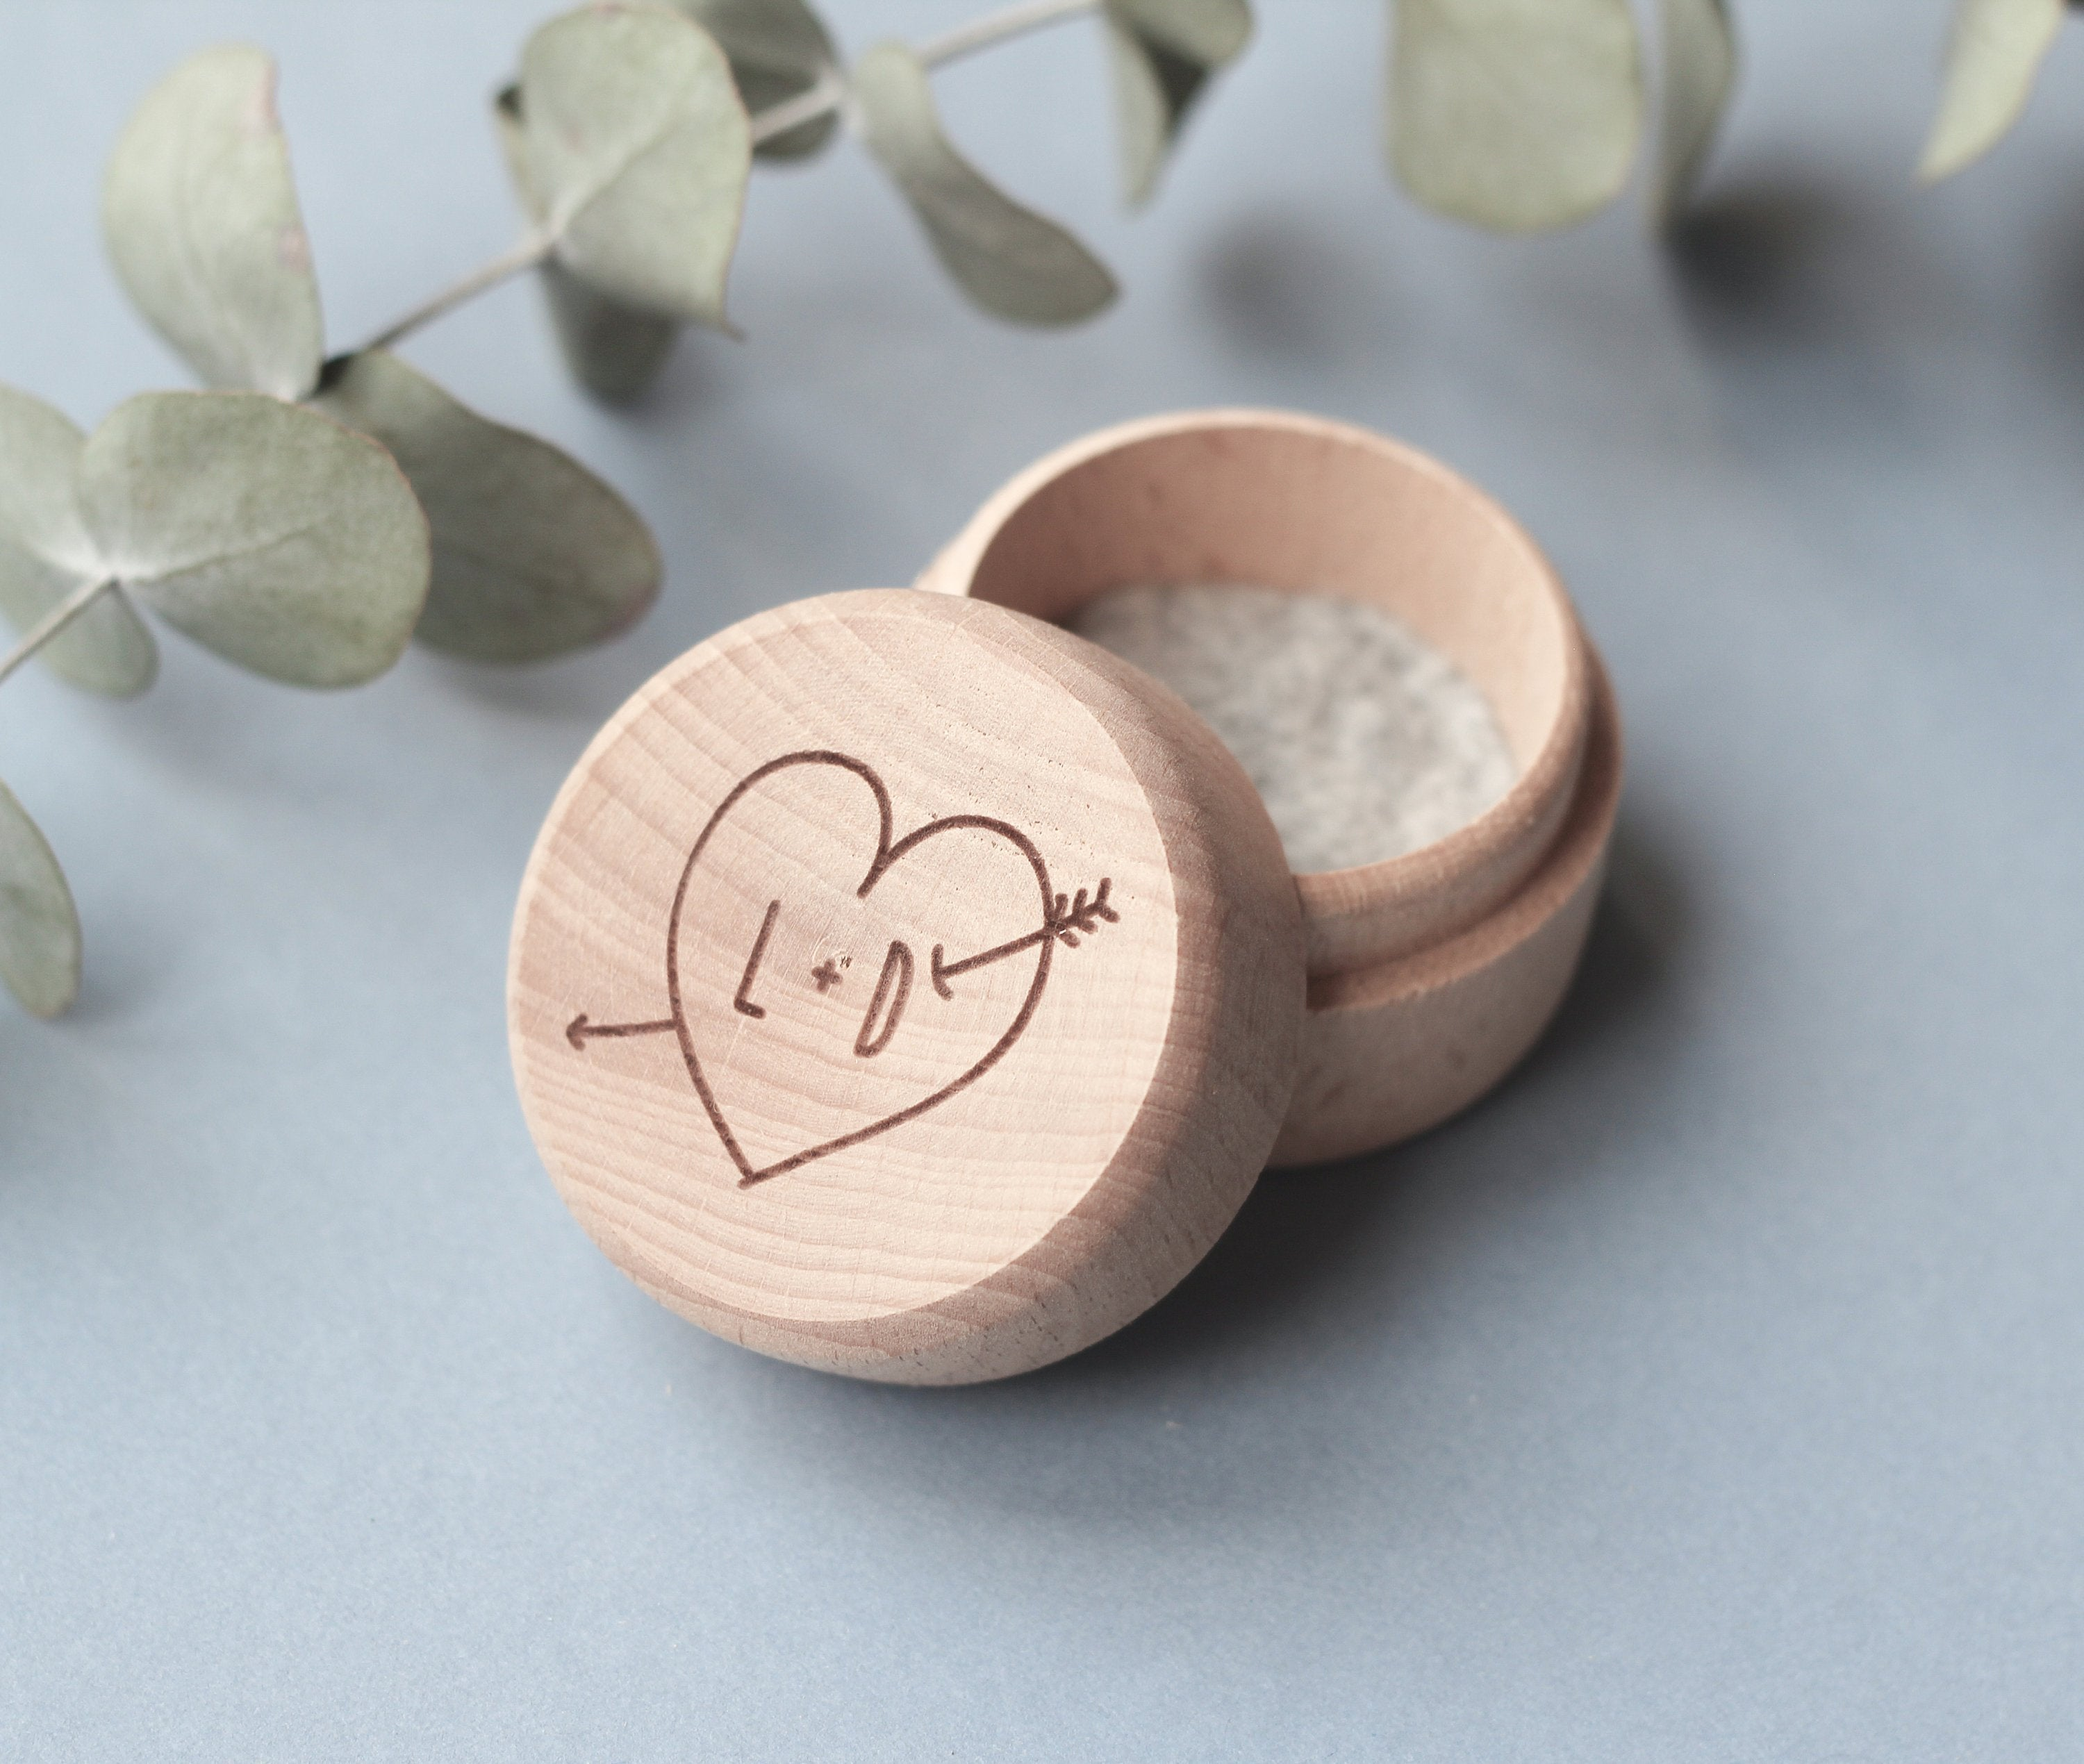 fira-site - Arrow Through Heart Wedding Ring Box